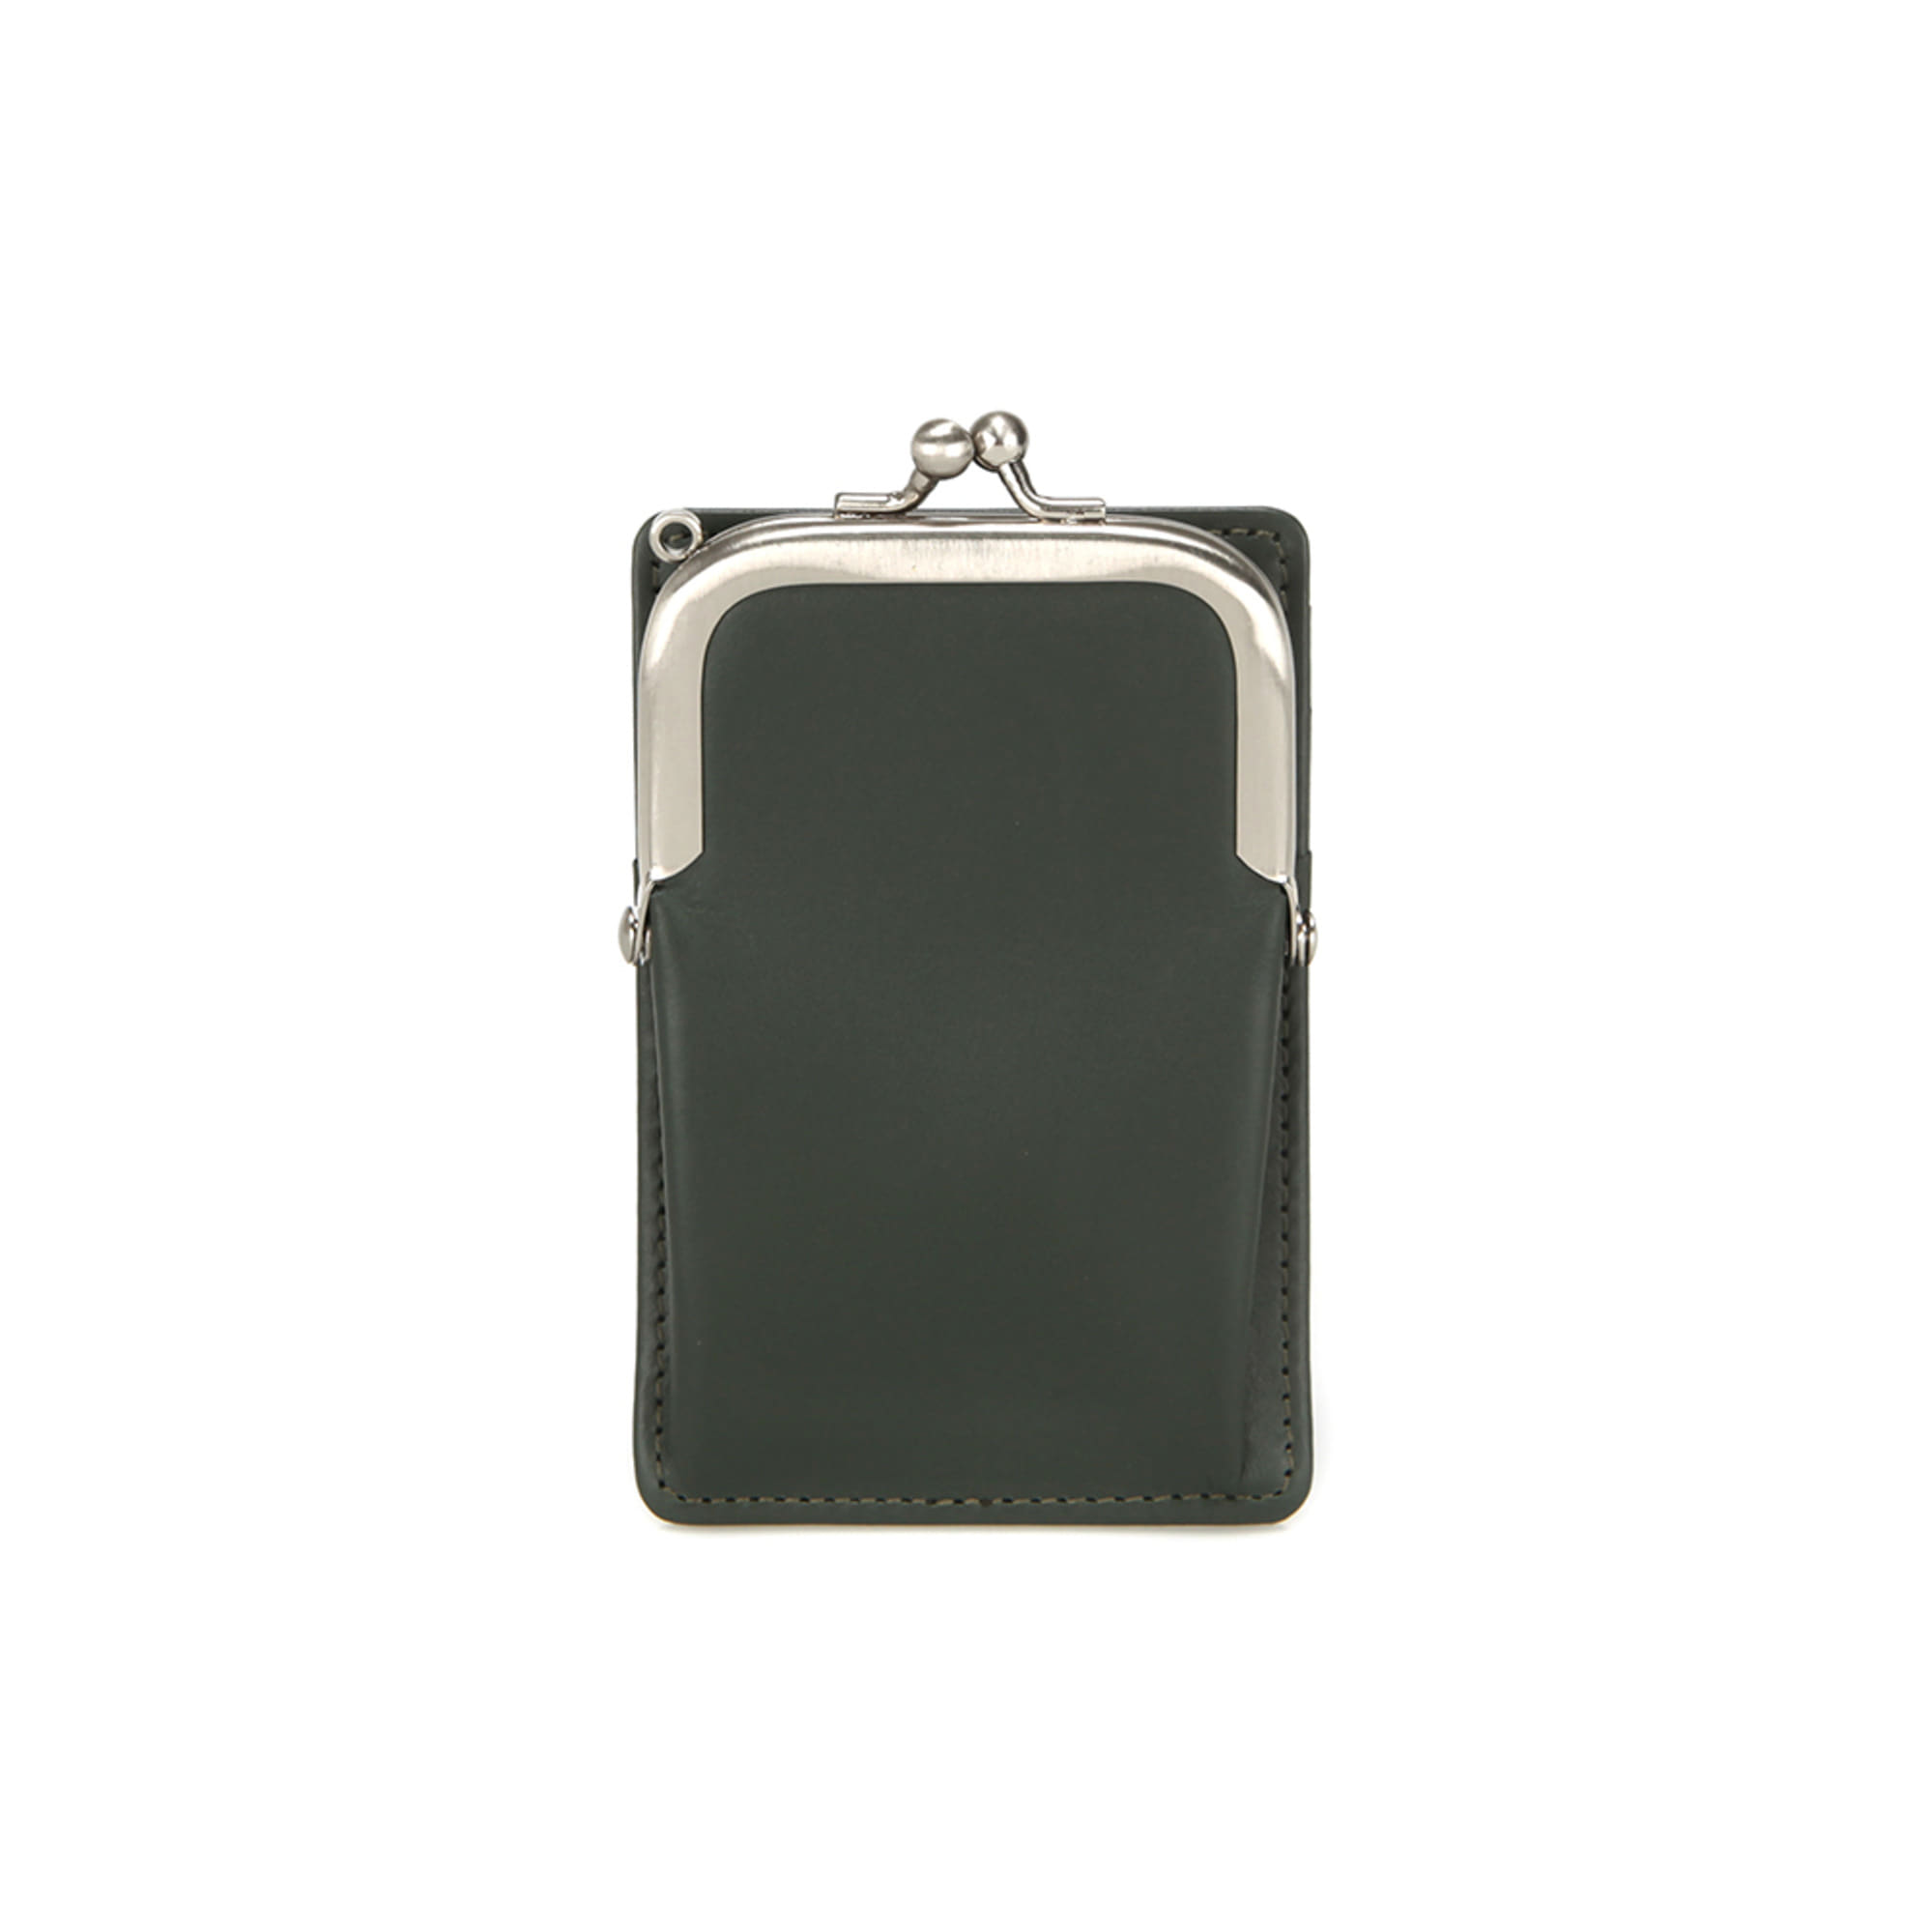 (SCRATCH SALE) FRAME MINI CARD WALLET - KHAKI